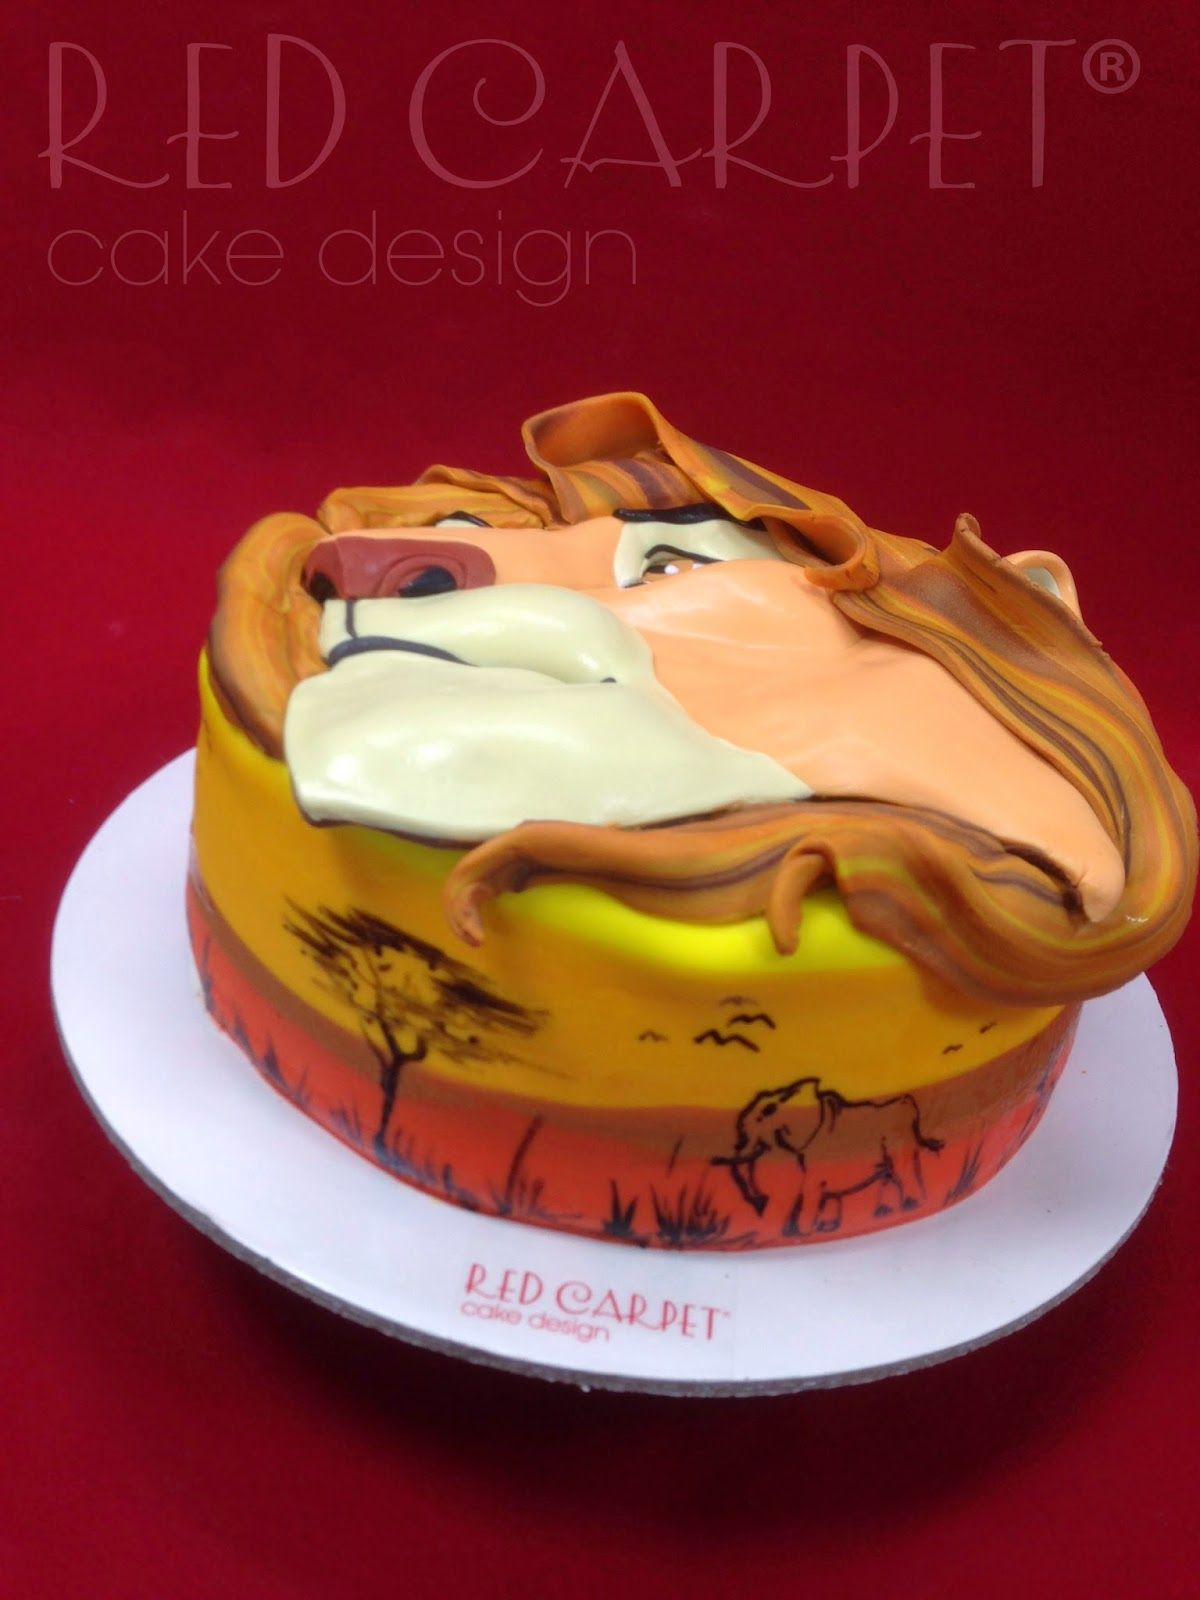 King Lion Cake By Red Carpet Cake Design I Soo Want To Make That